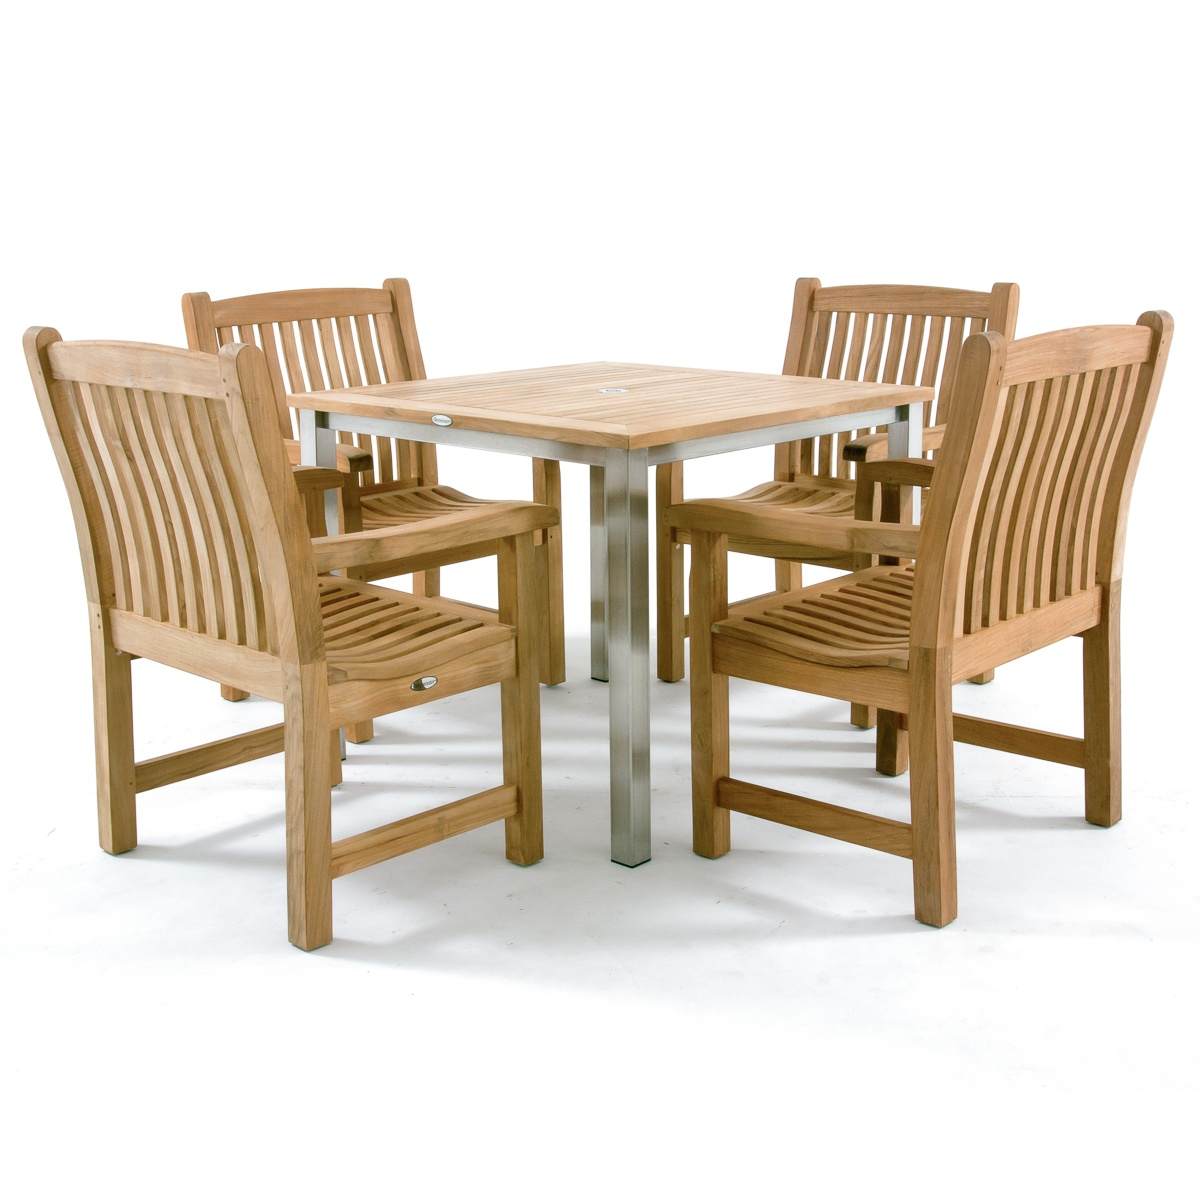 Teak and stainless steel dining set westminster teak for Outdoor furniture quality